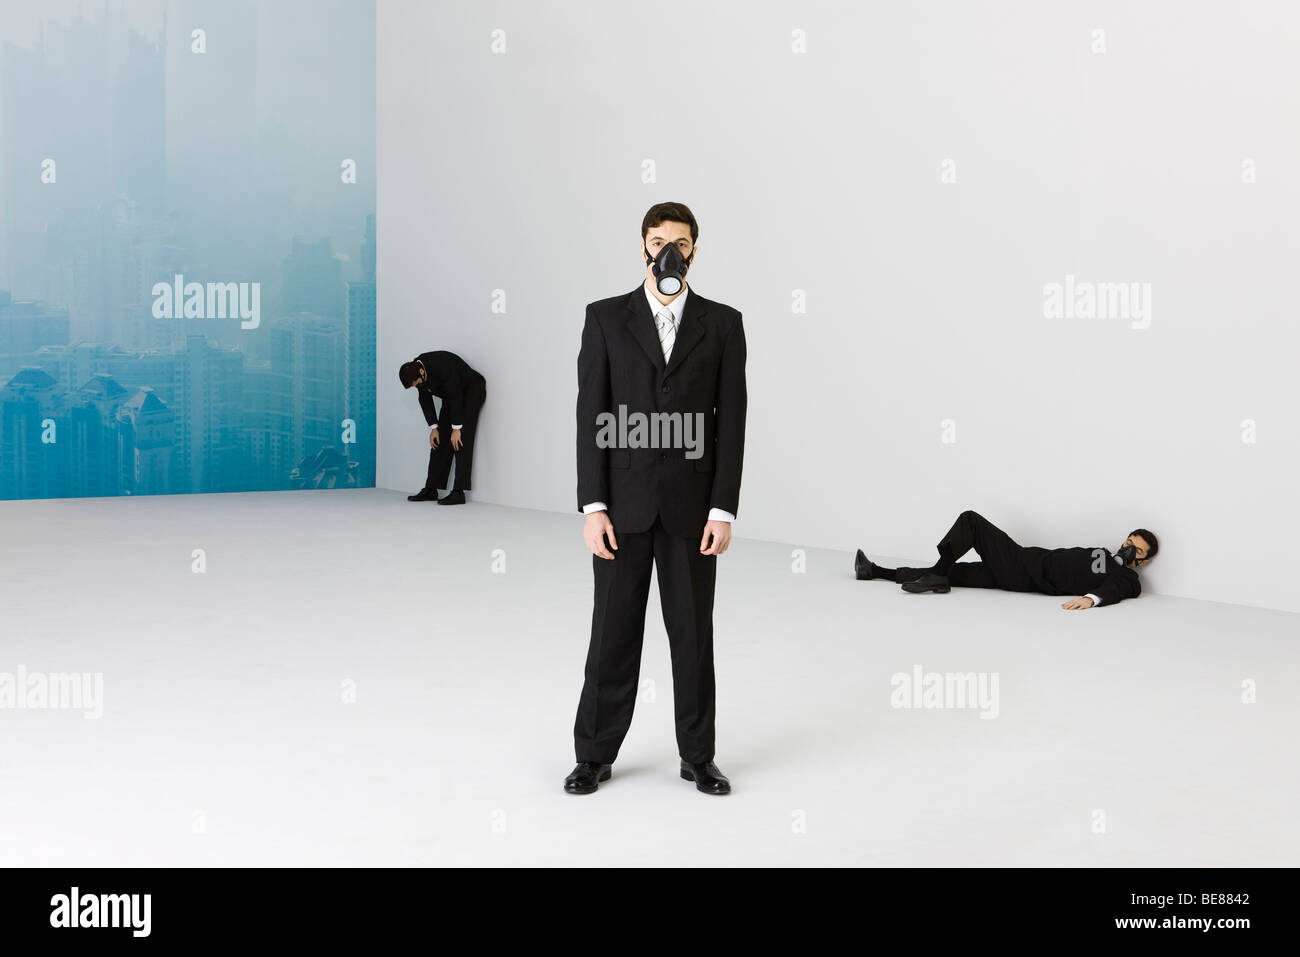 Businessmen wearing gas mask, cityscape obscured by smog in background - Stock Image